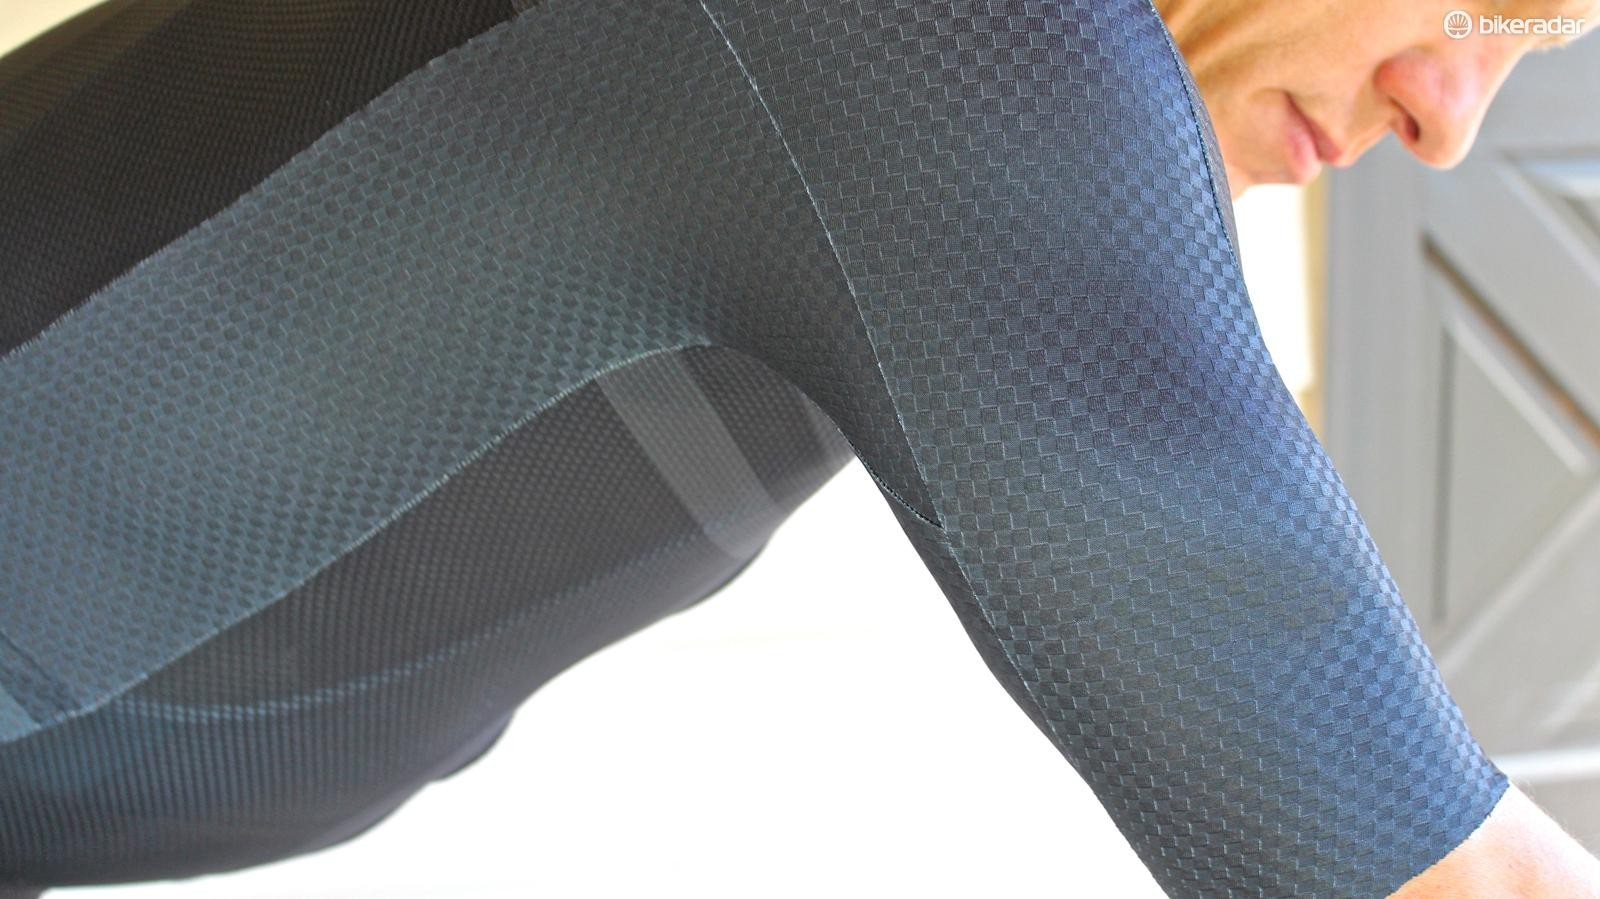 The Speed Sleeve cut is designed to remove wrinkles when on the bike